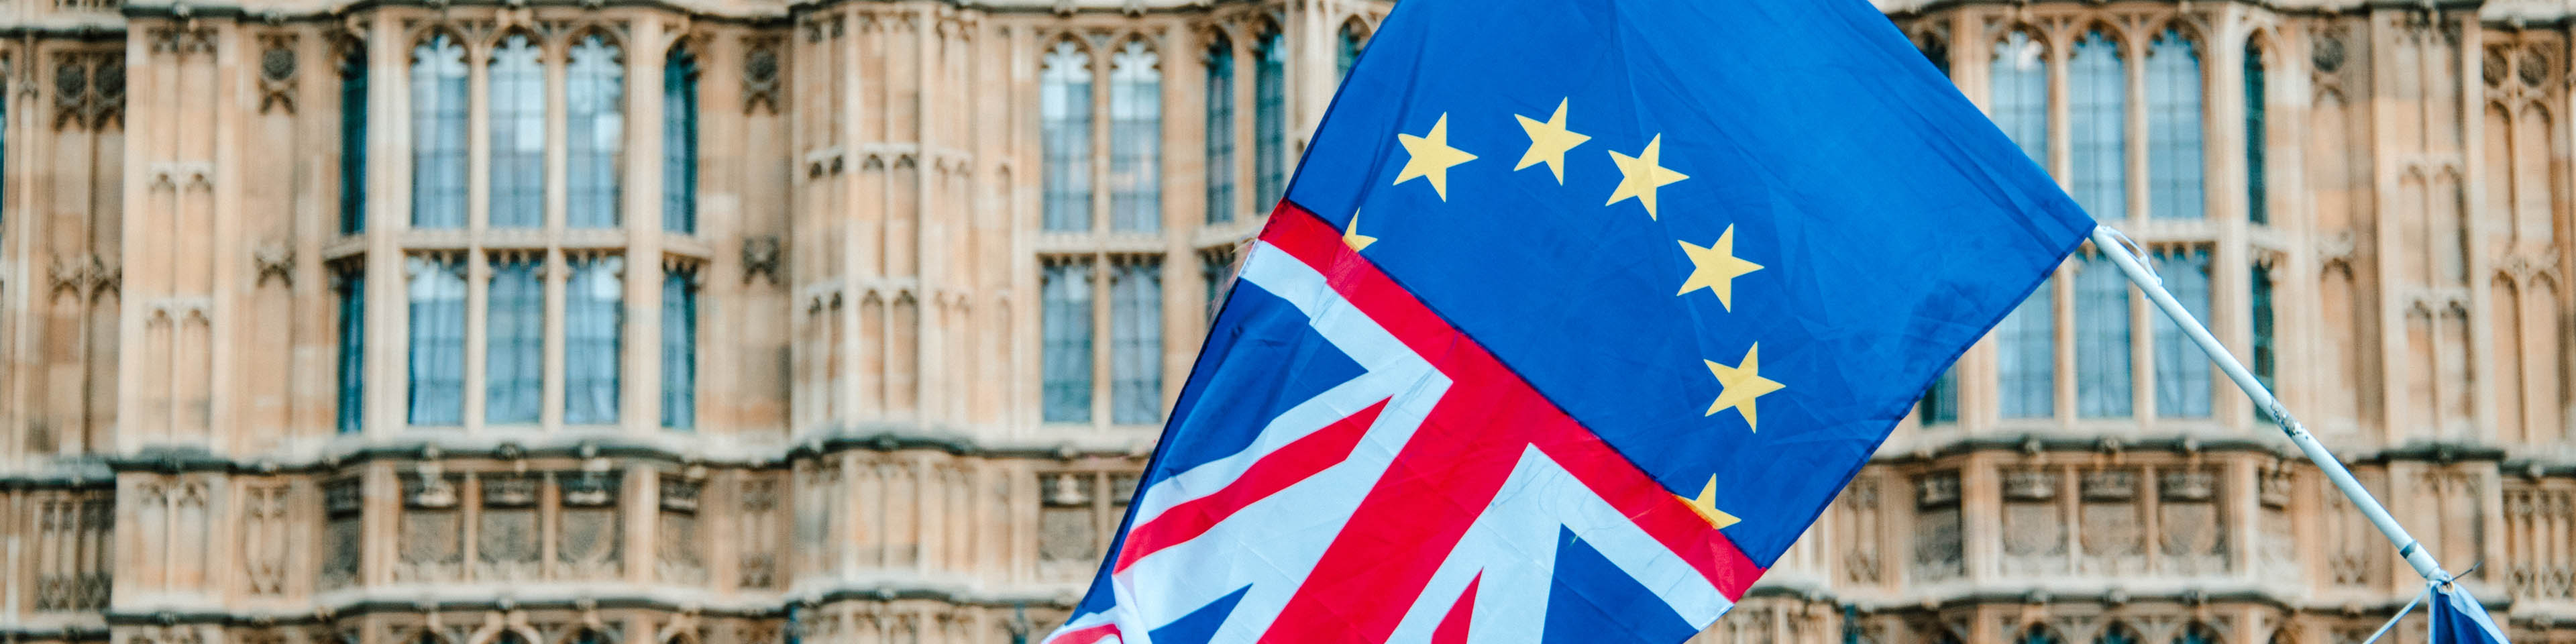 A flag merging the UK and EU flags by Houses of Parliament building in London